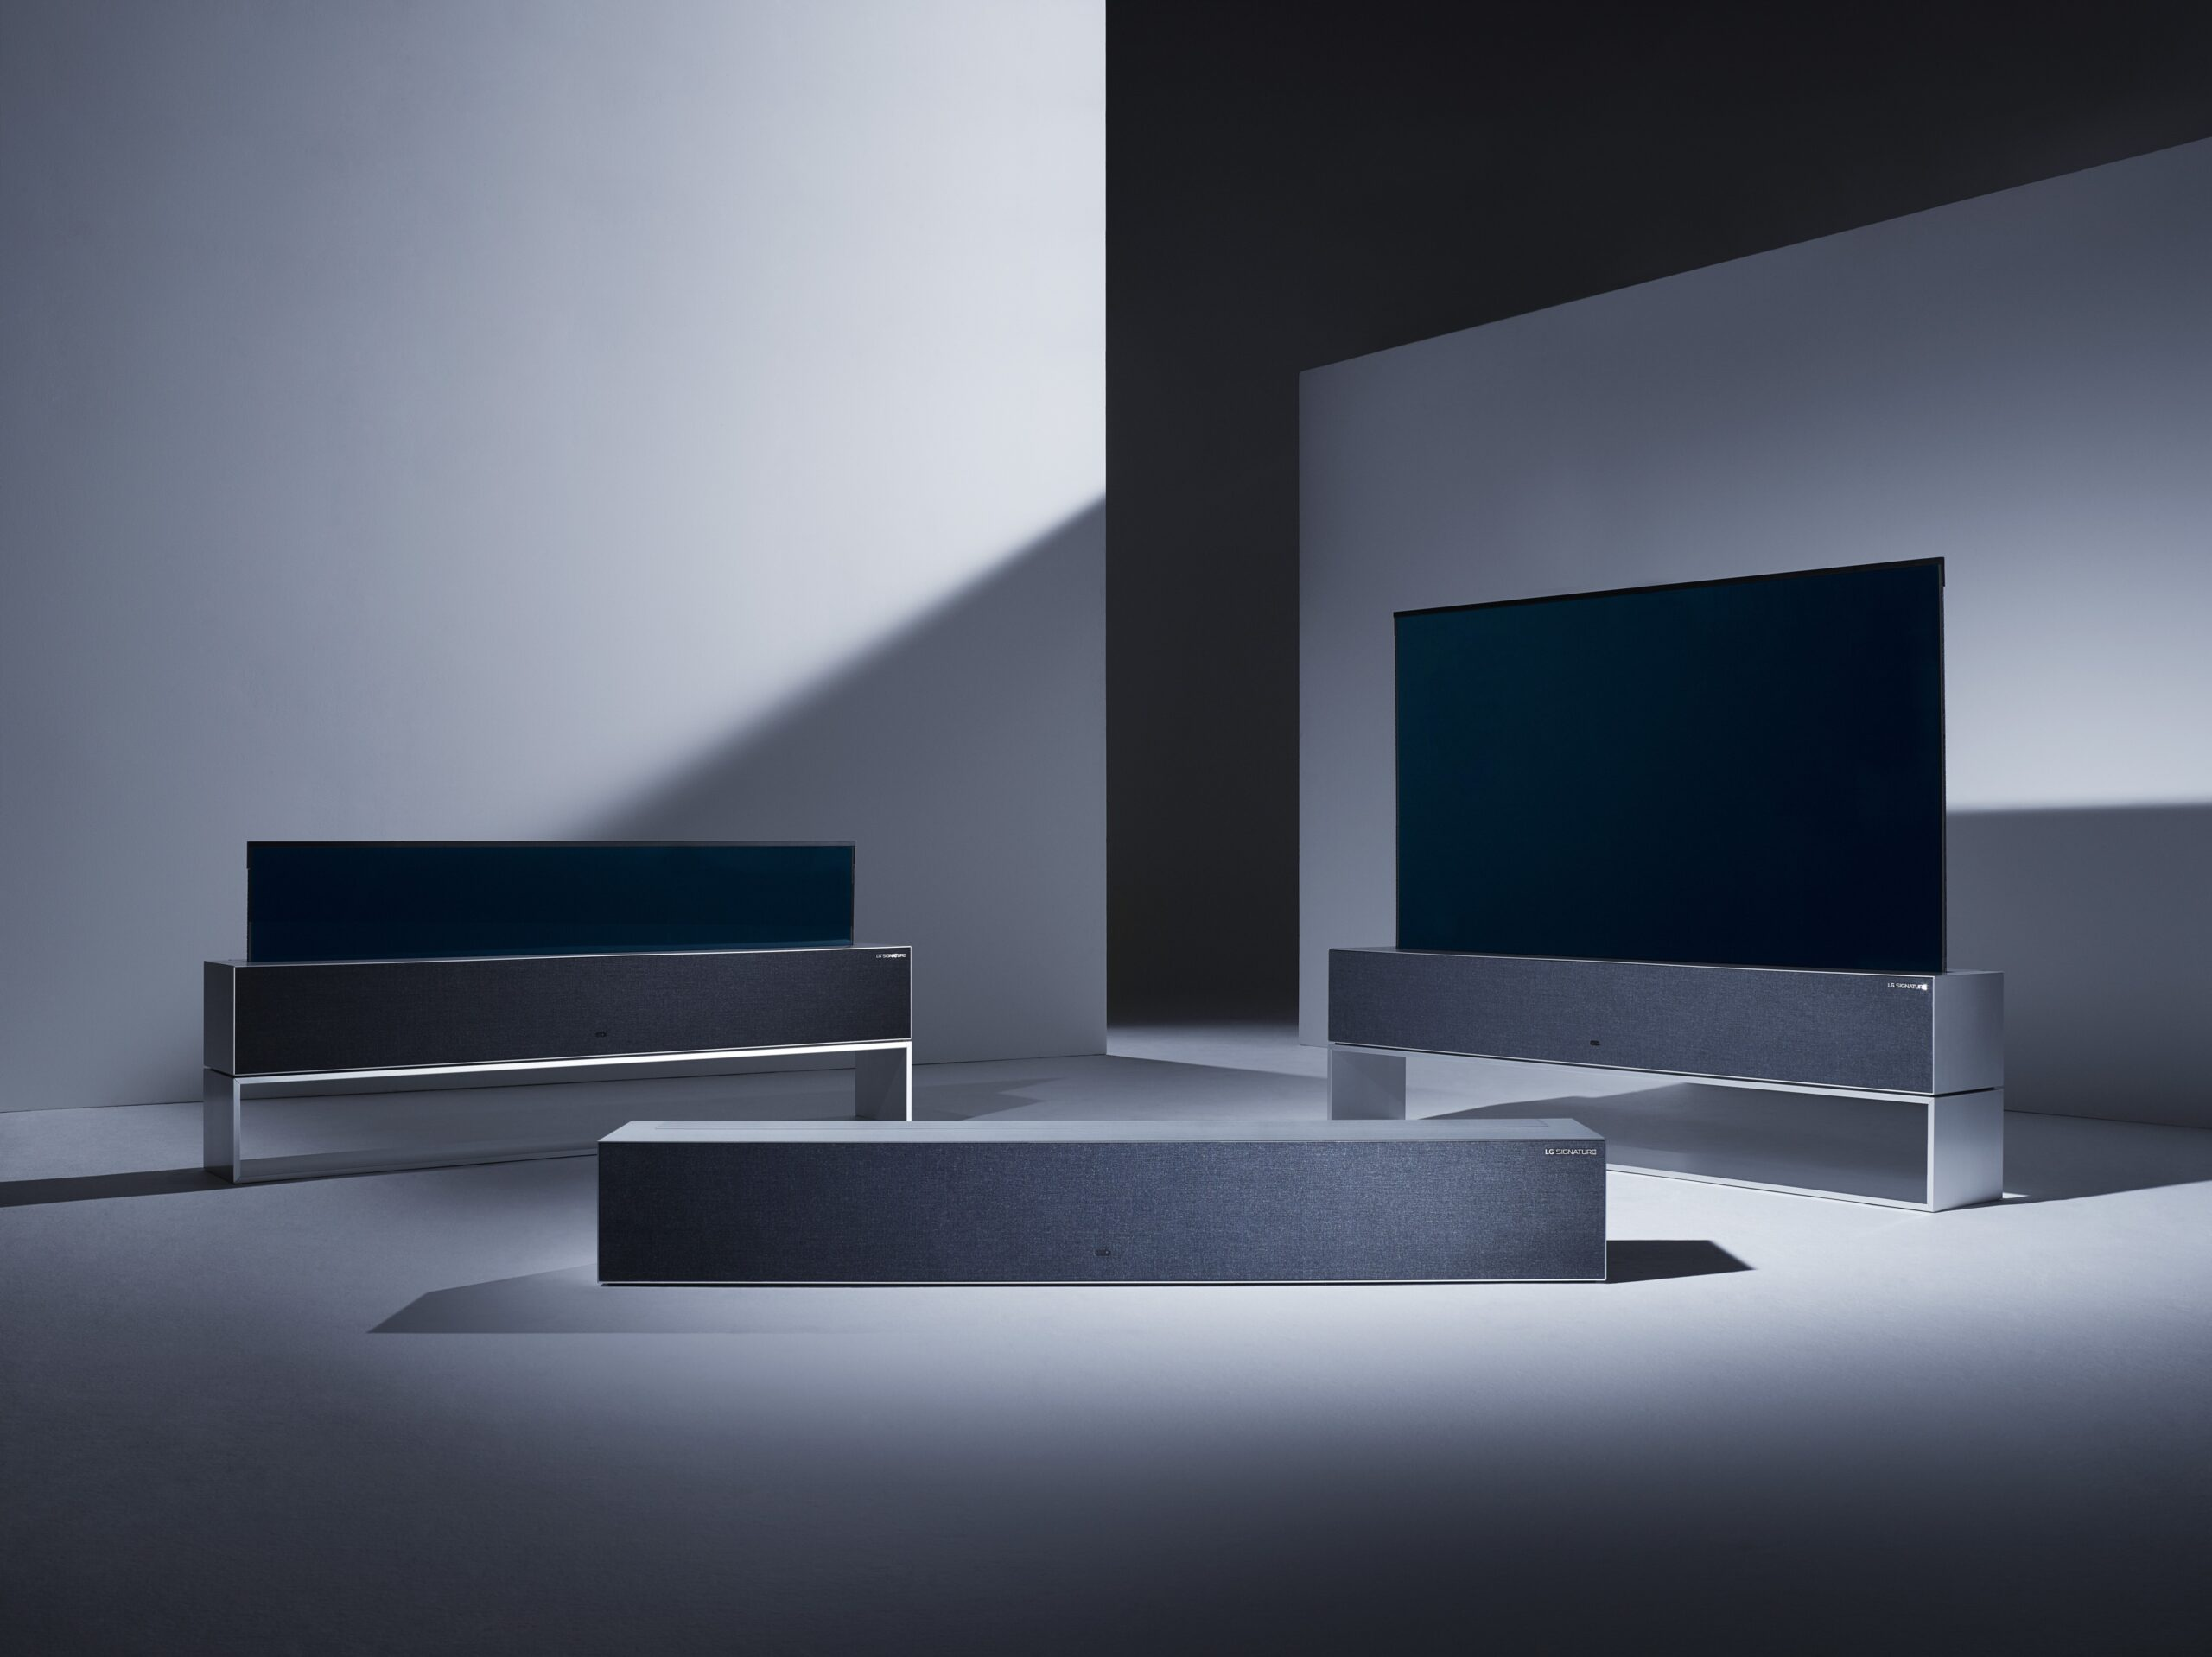 Three LG SIGNATURE OLED TV R sets are set in three different stages of unfurling their rollable displays at a darkened studio.